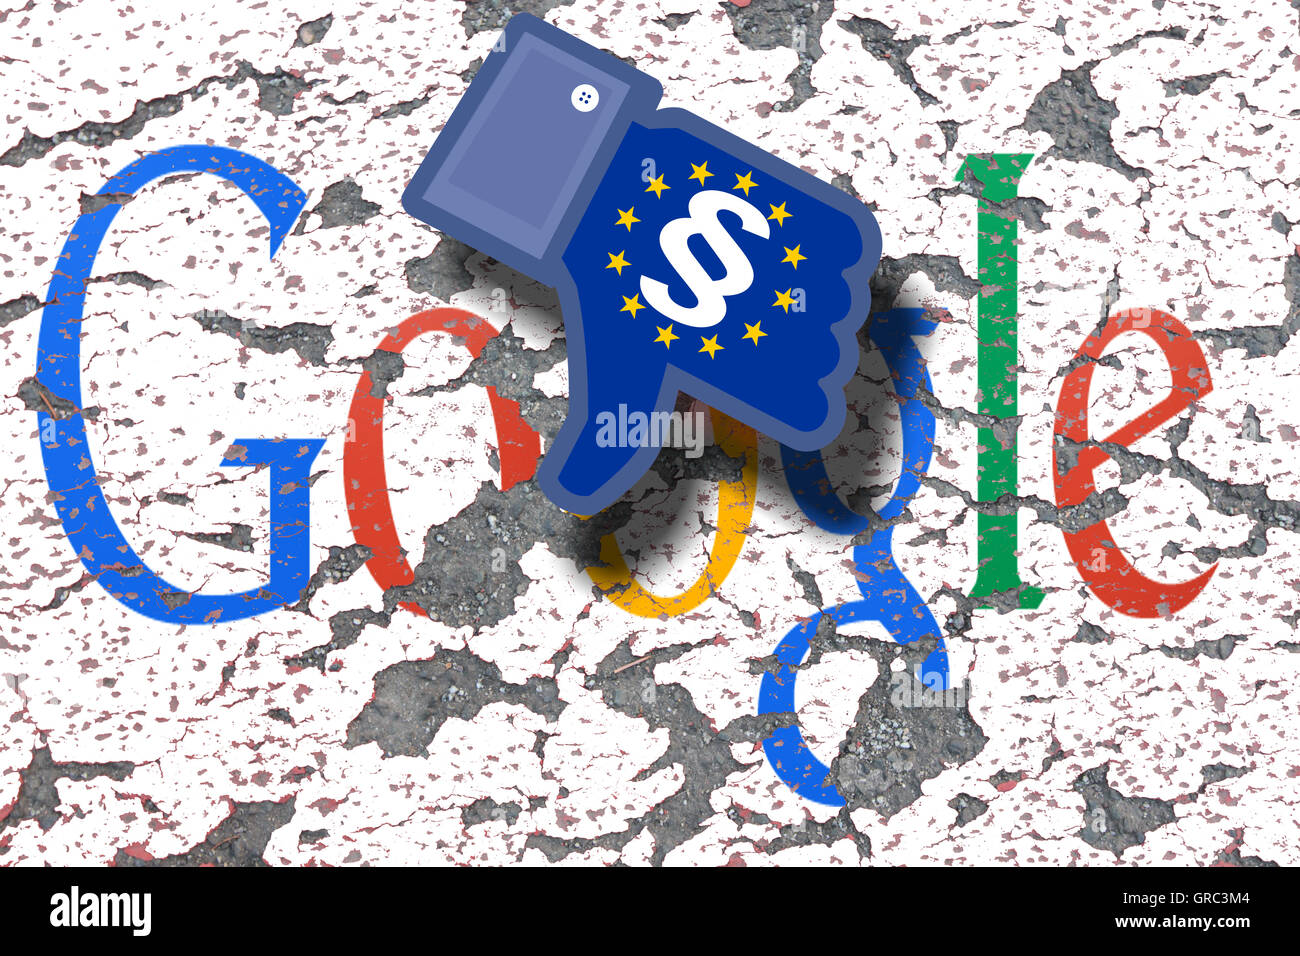 Eroding Google Sign On A Wall With Dislike Icon And Flag Of Eu - Stock Image